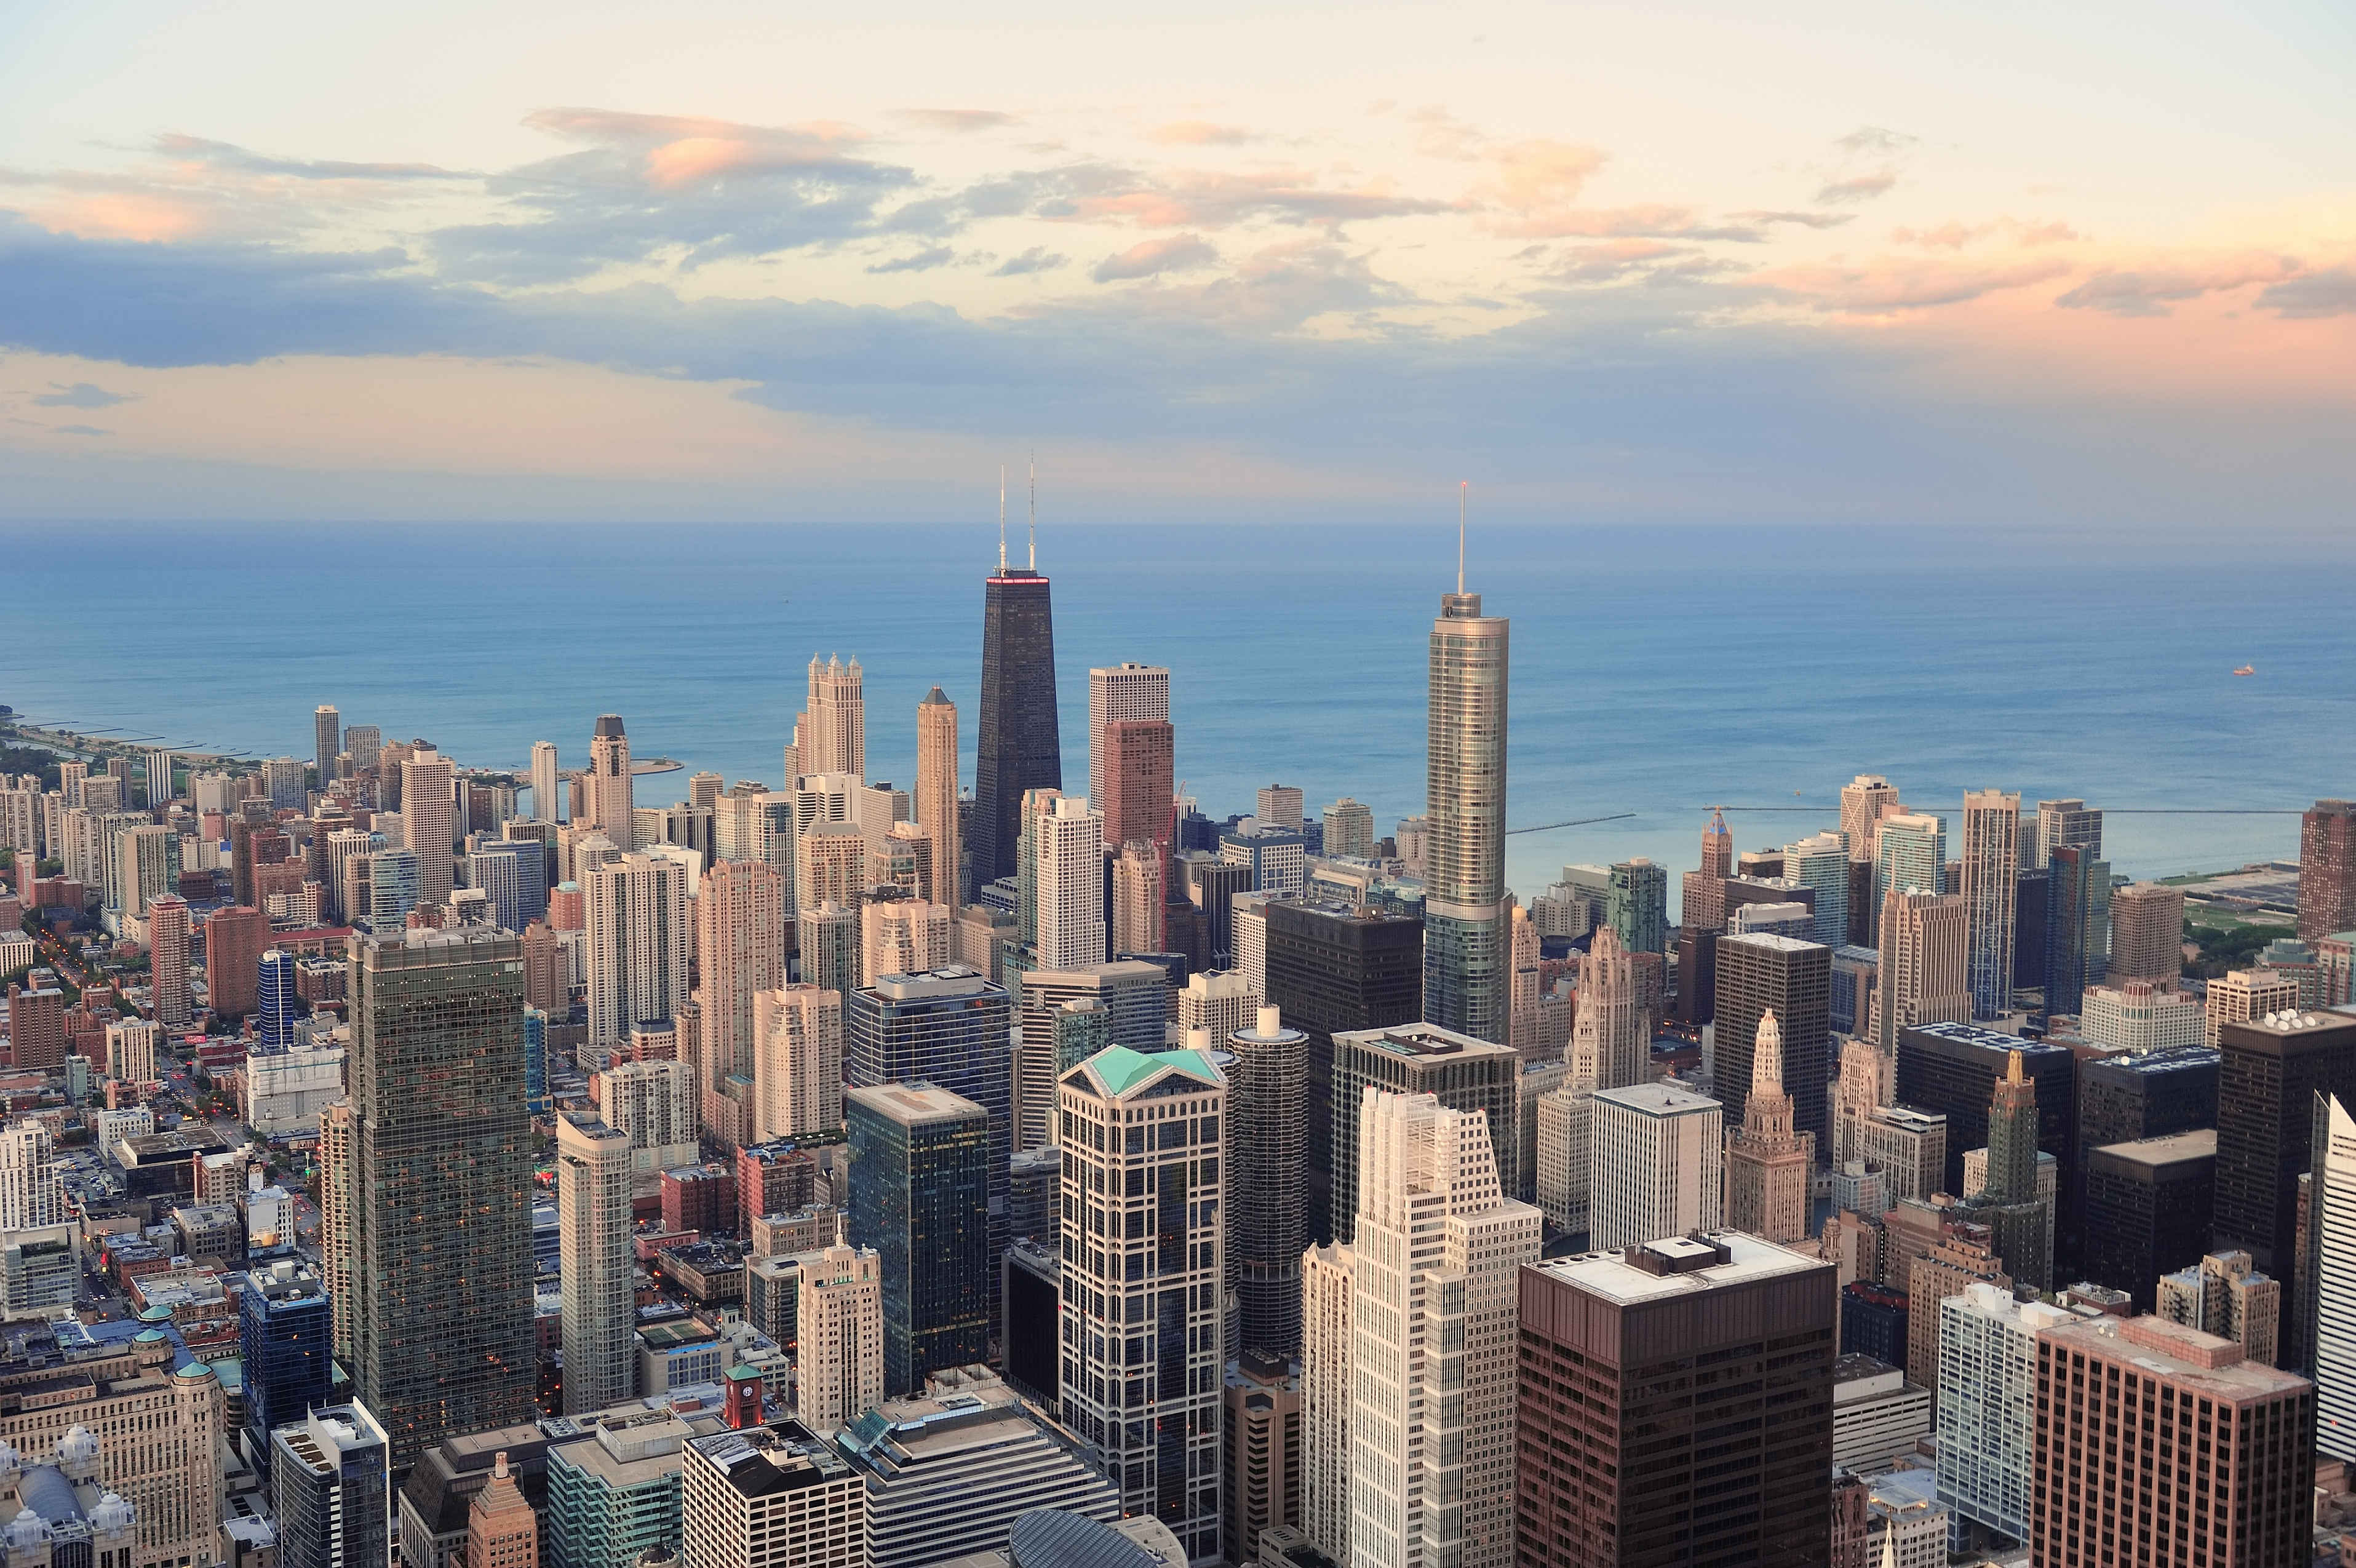 Skyline of downtown Chicago featuring skyscrapers and Lake Michigan.